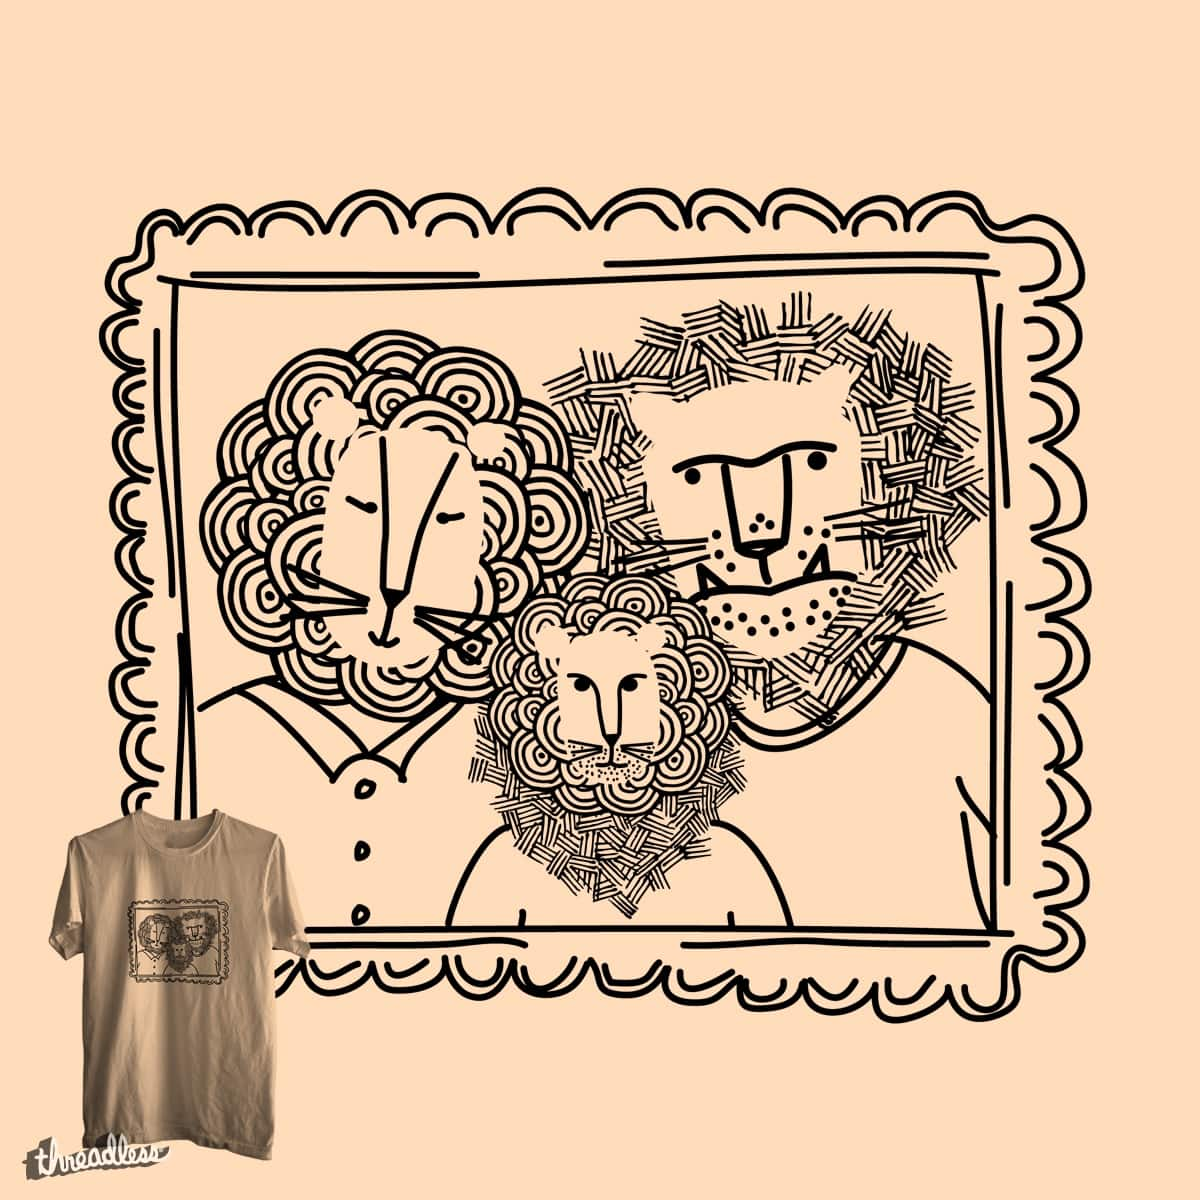 Family Portrait by ndough on Threadless